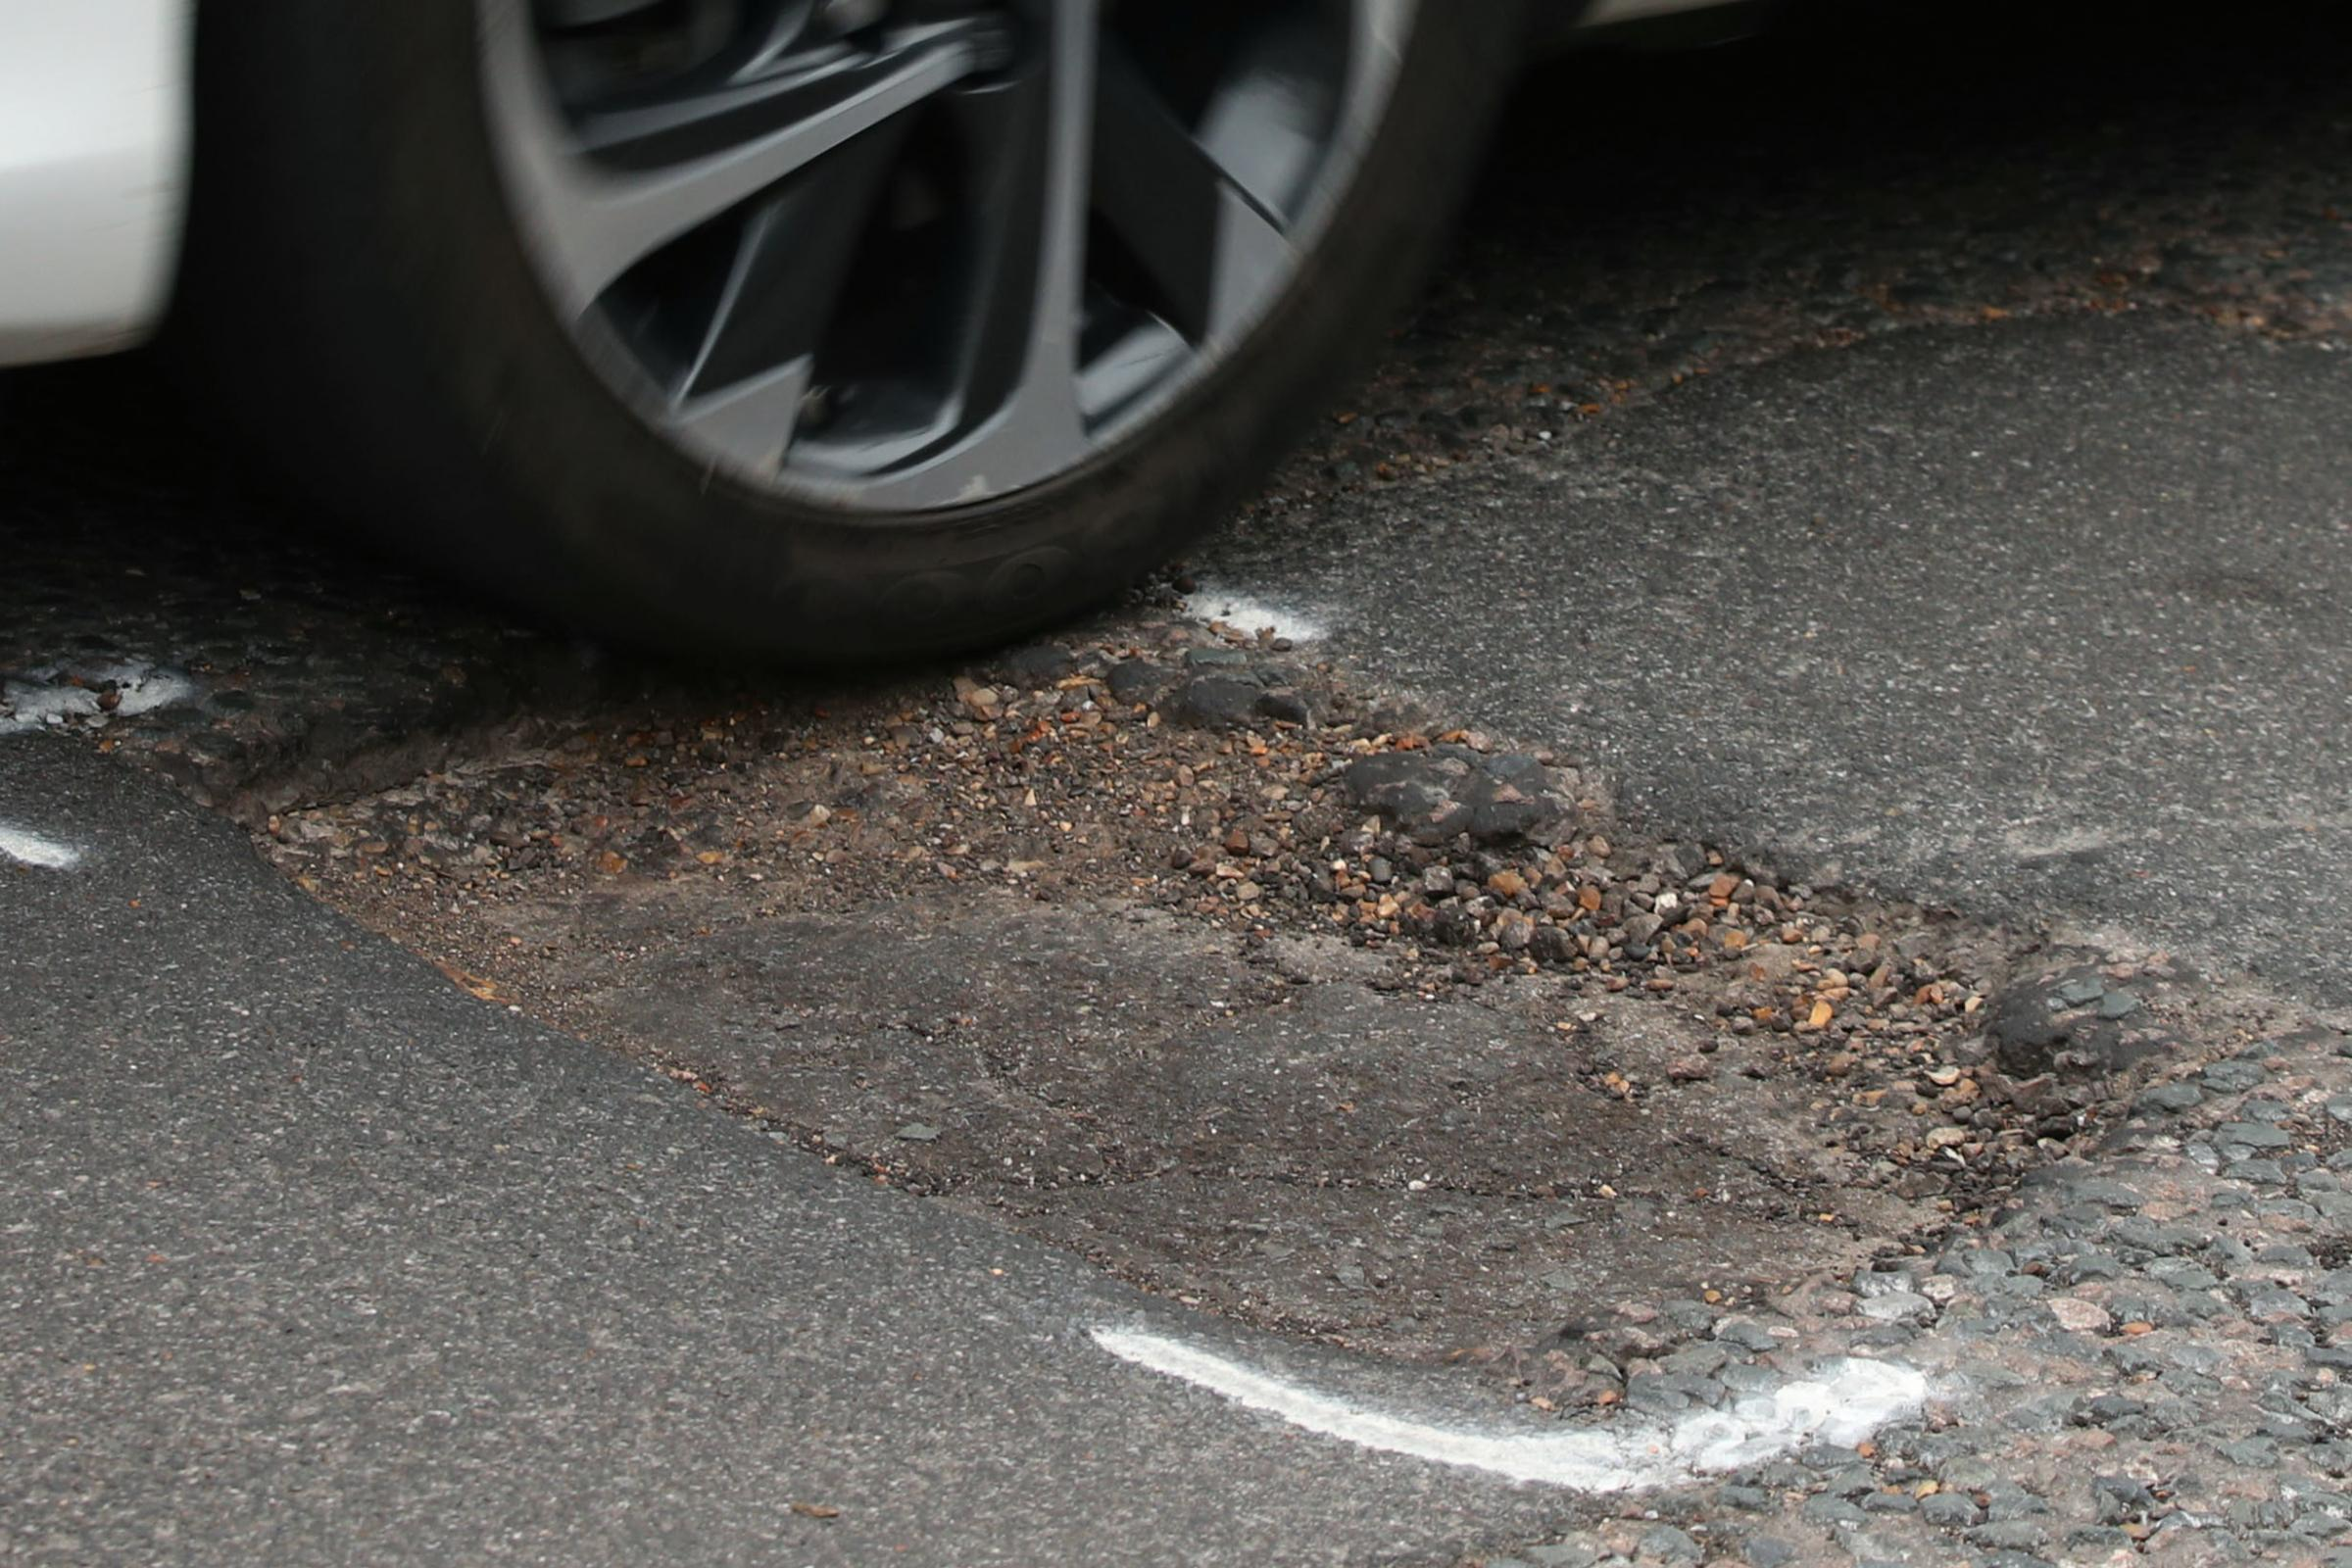 Damaged shock absorbers, broken suspension springs and distorted wheels are among the most common vehicle problems caused by potholes (Yui Mok/PA)